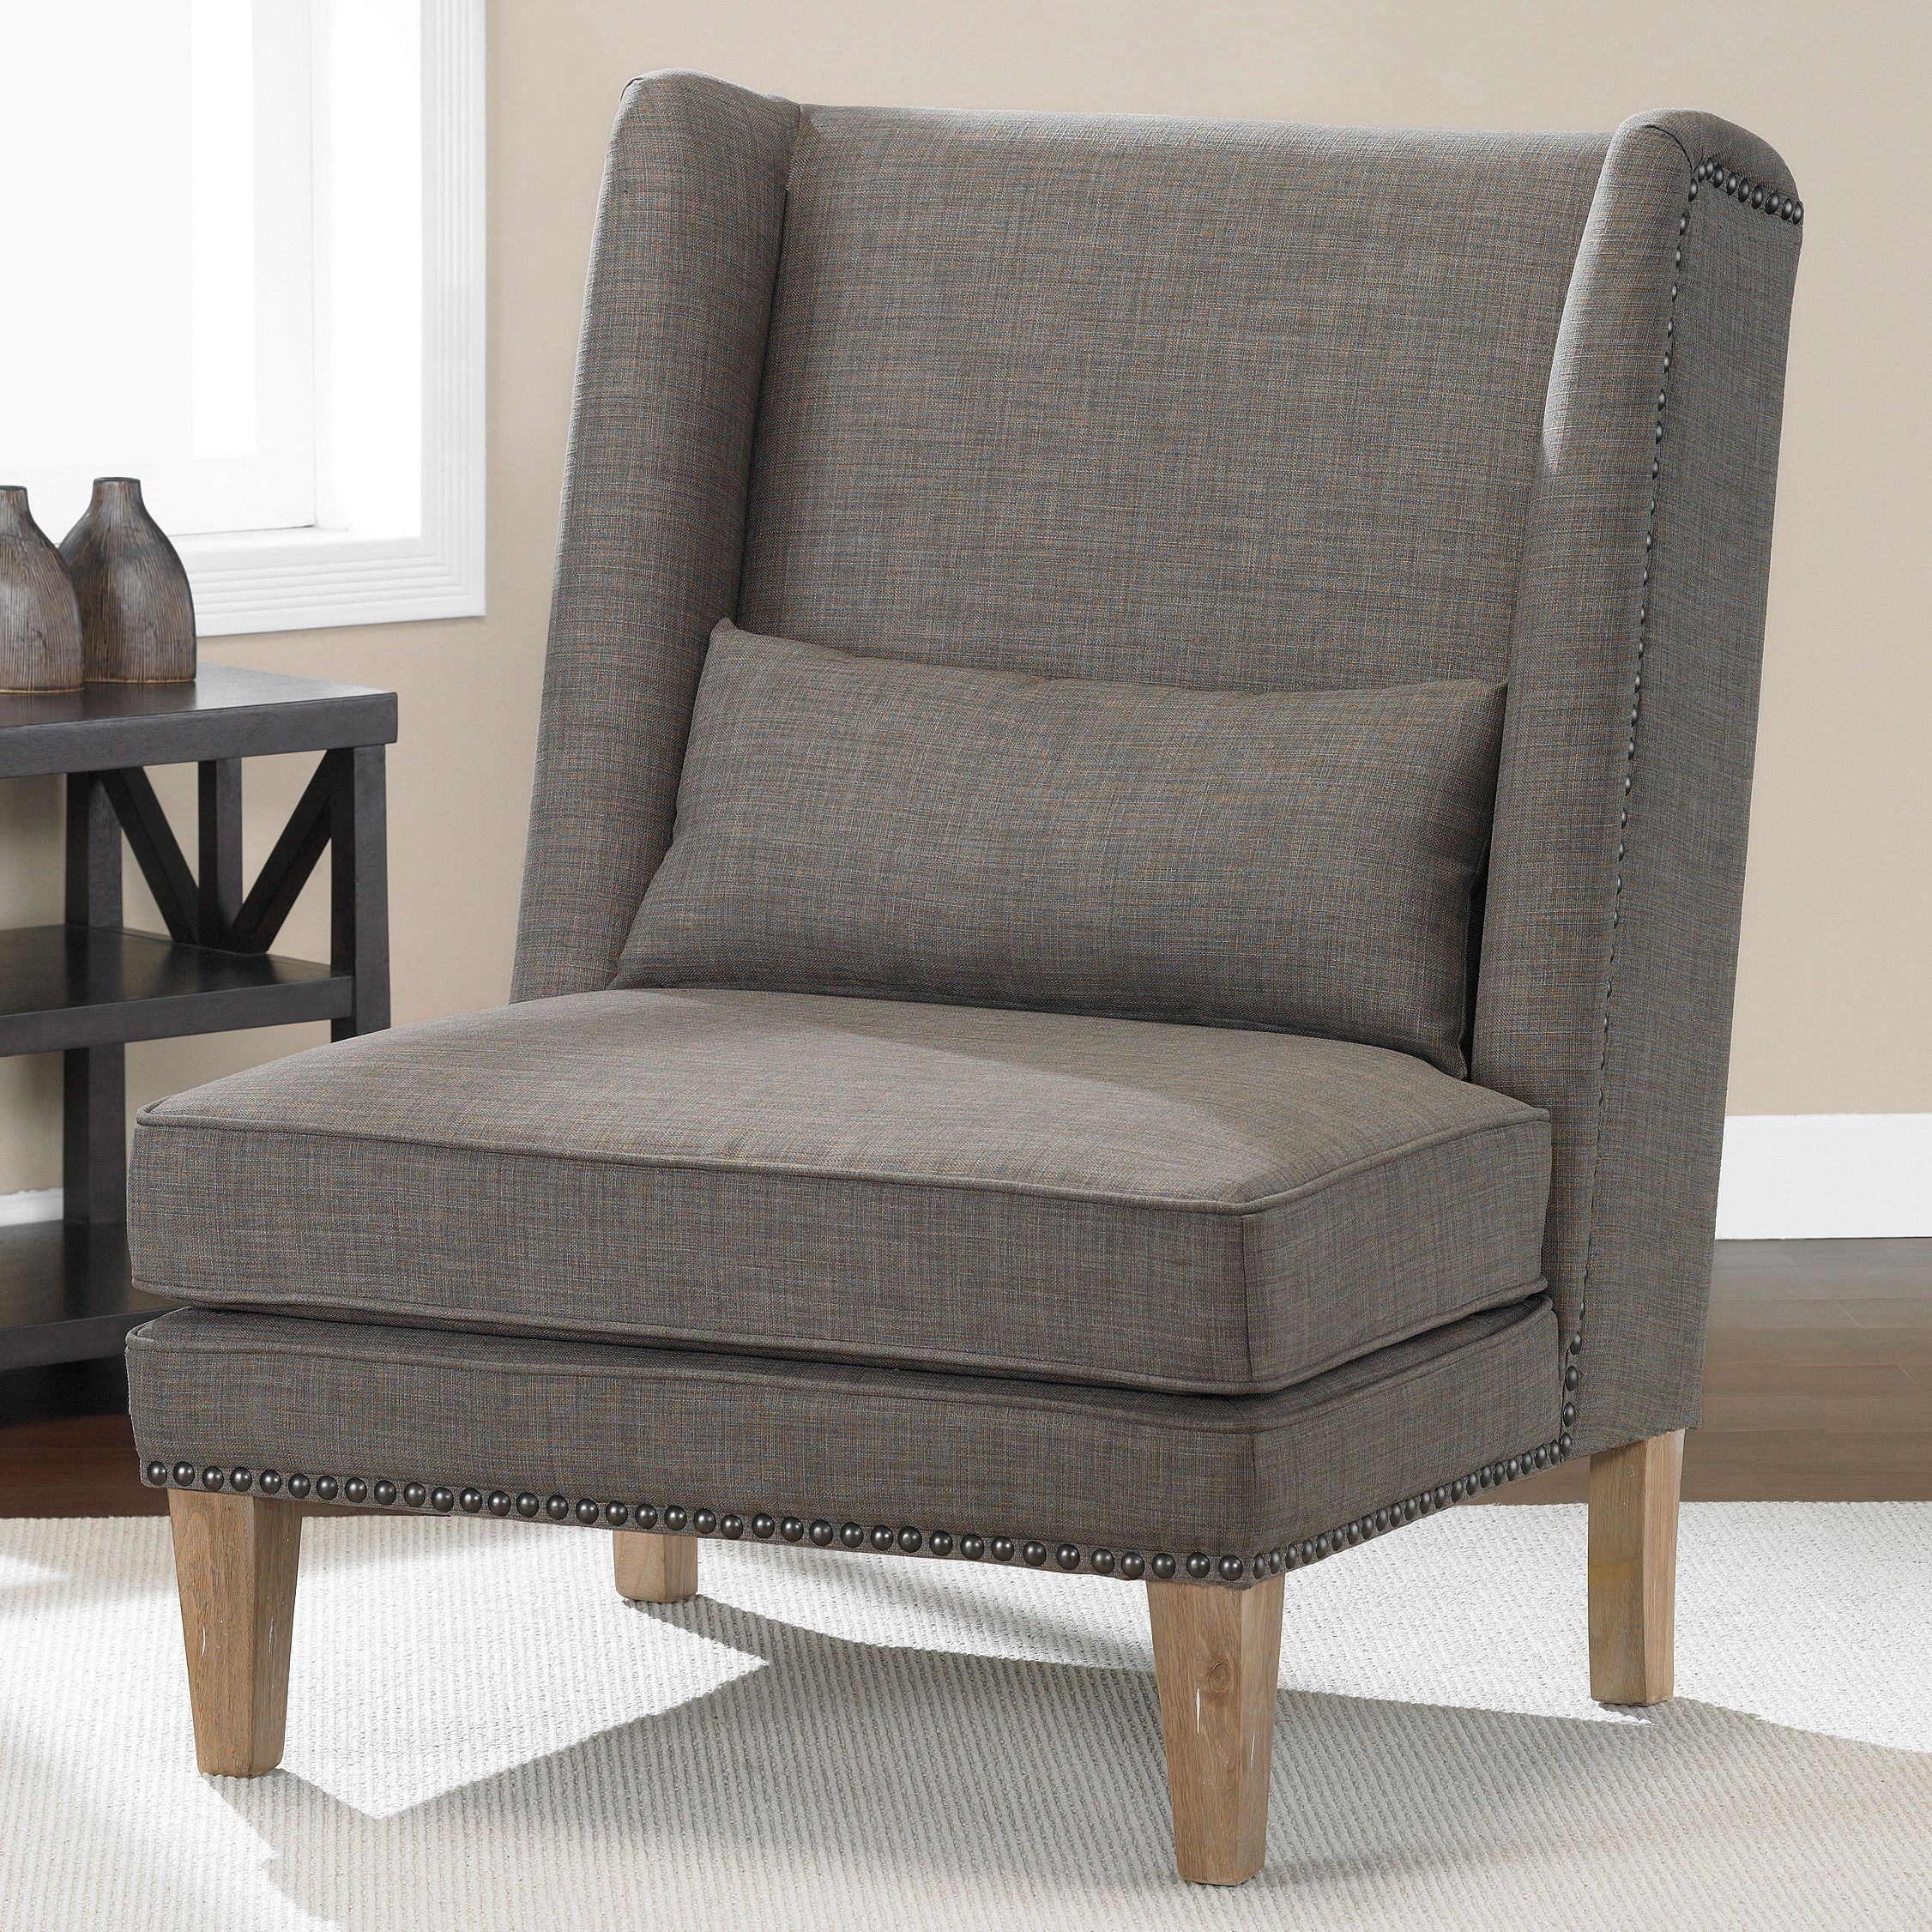 This Beautifully Designed Linen Wing Chair Will Add A Touch